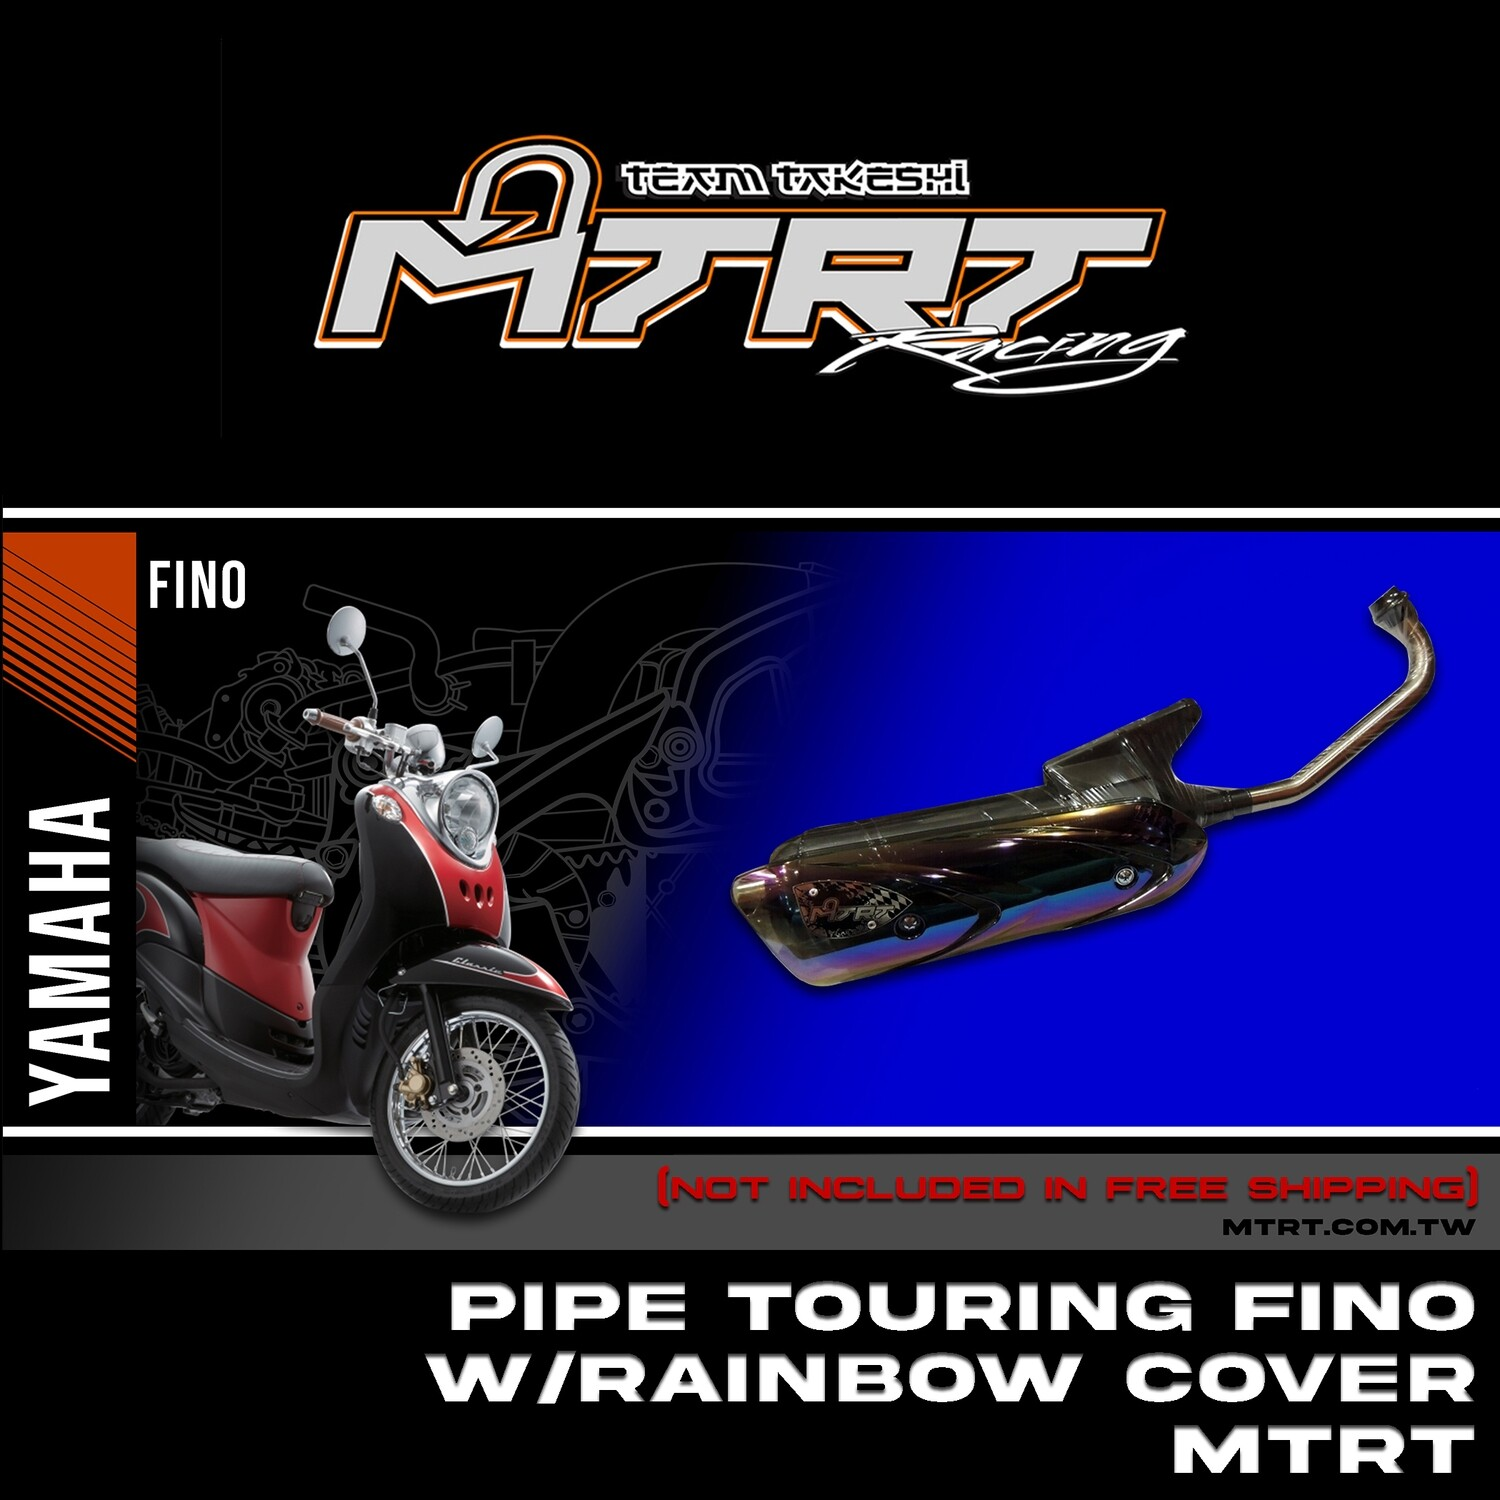 PIPE TOURING Mio 115 with rainbow cover MTRT